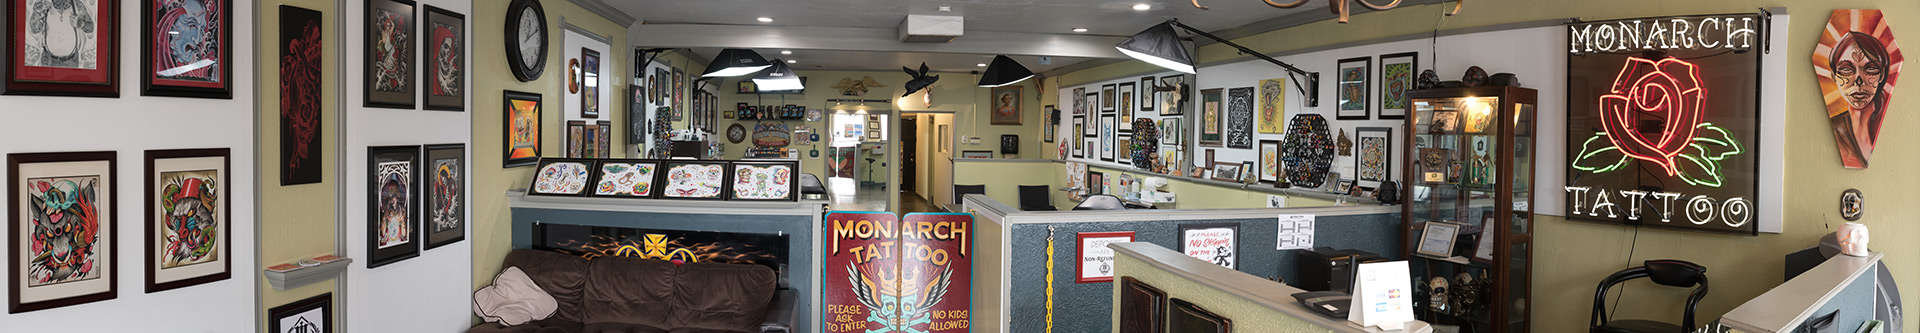 Inside Monarch Tattoo, Kennewick, WA